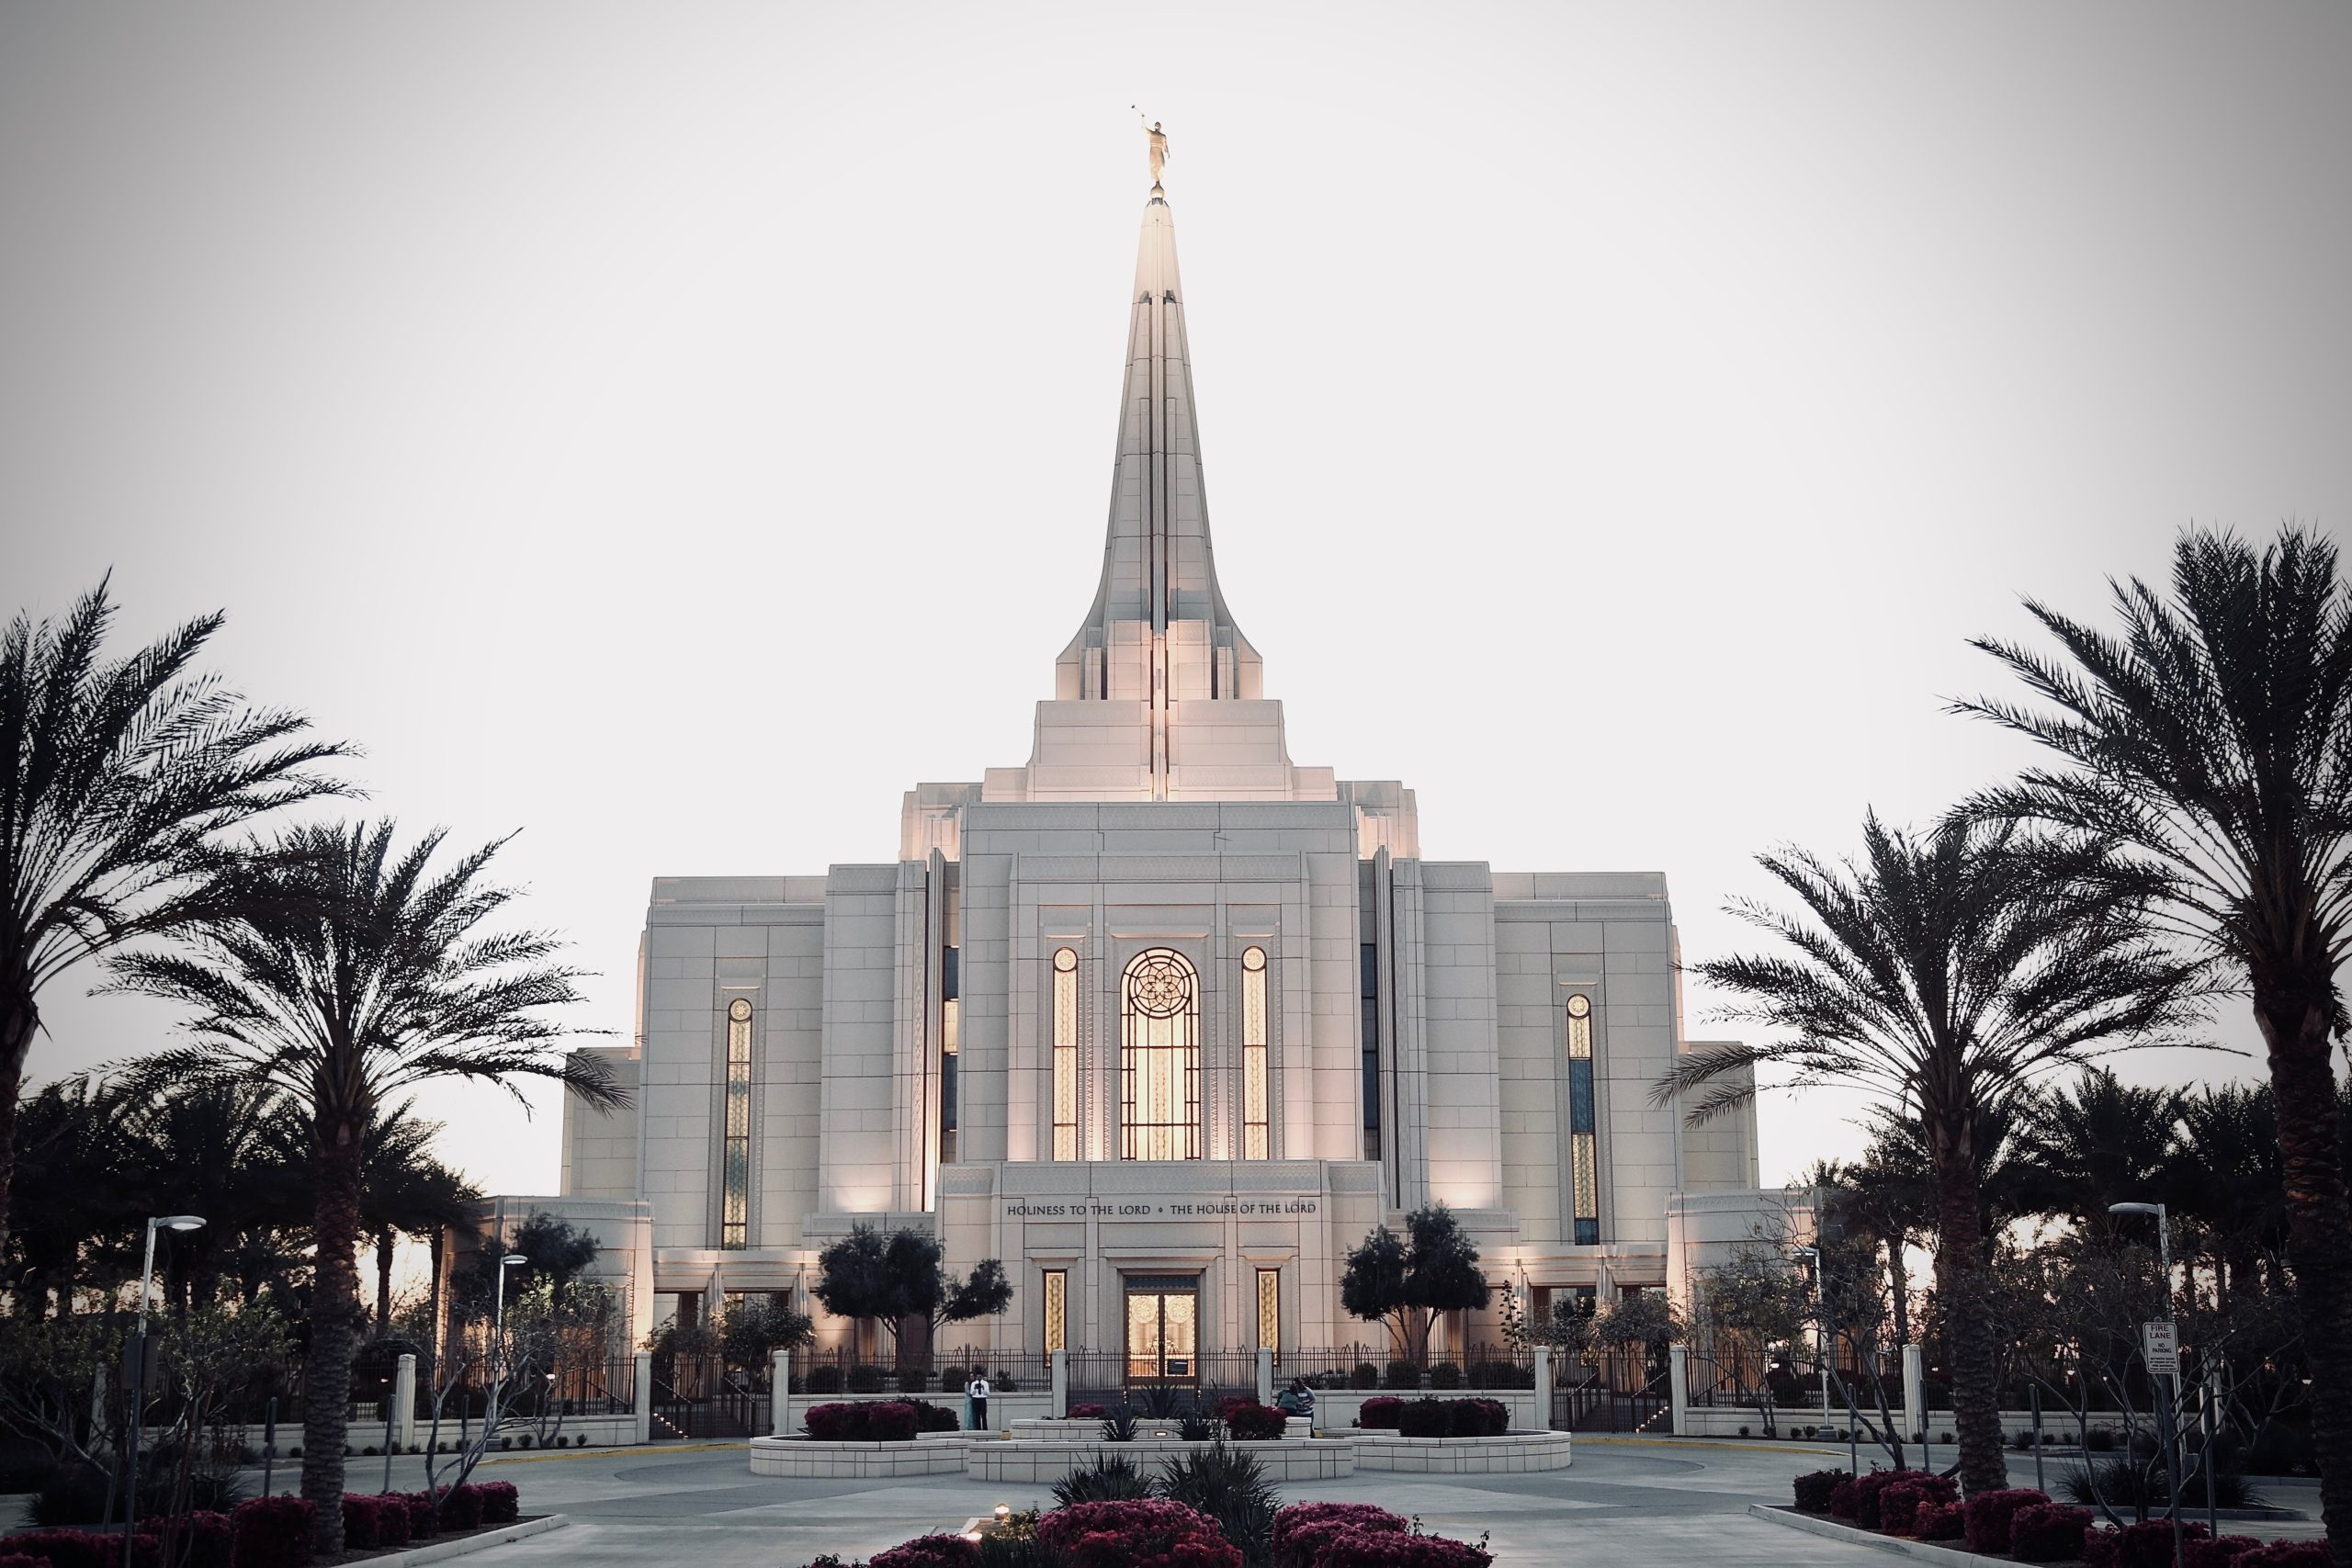 Picture of the Gilbert Arizona Temple of the LDS Church